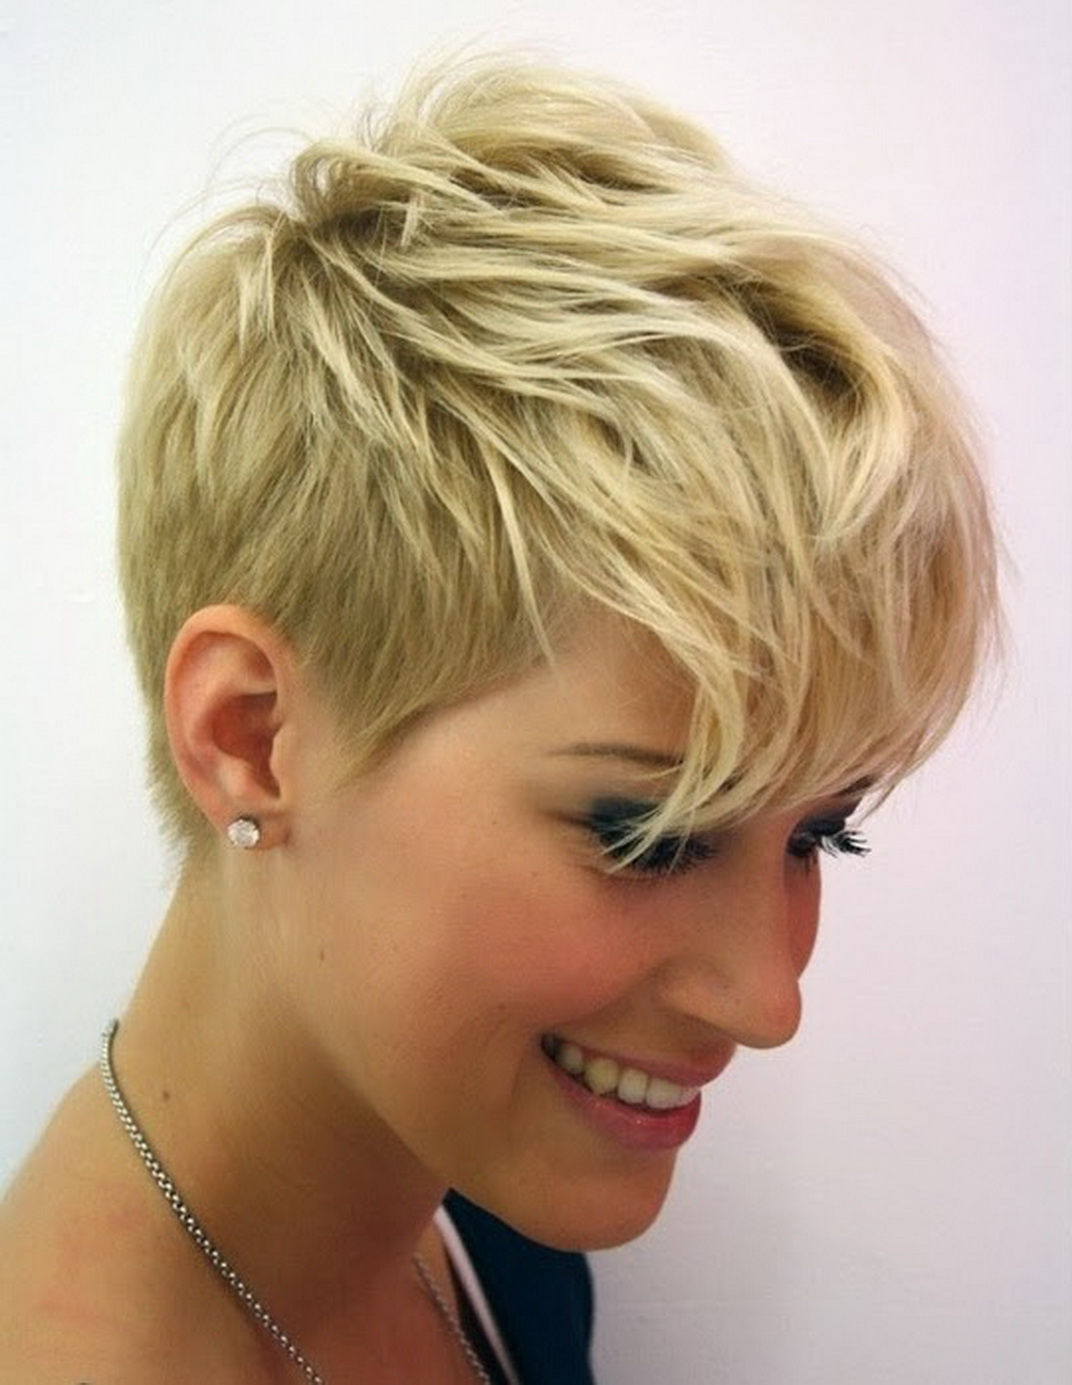 Short Hairstyles For Summer 2014 – Fashionsy For Short Trendy Hairstyles For Fine Hair (View 10 of 25)